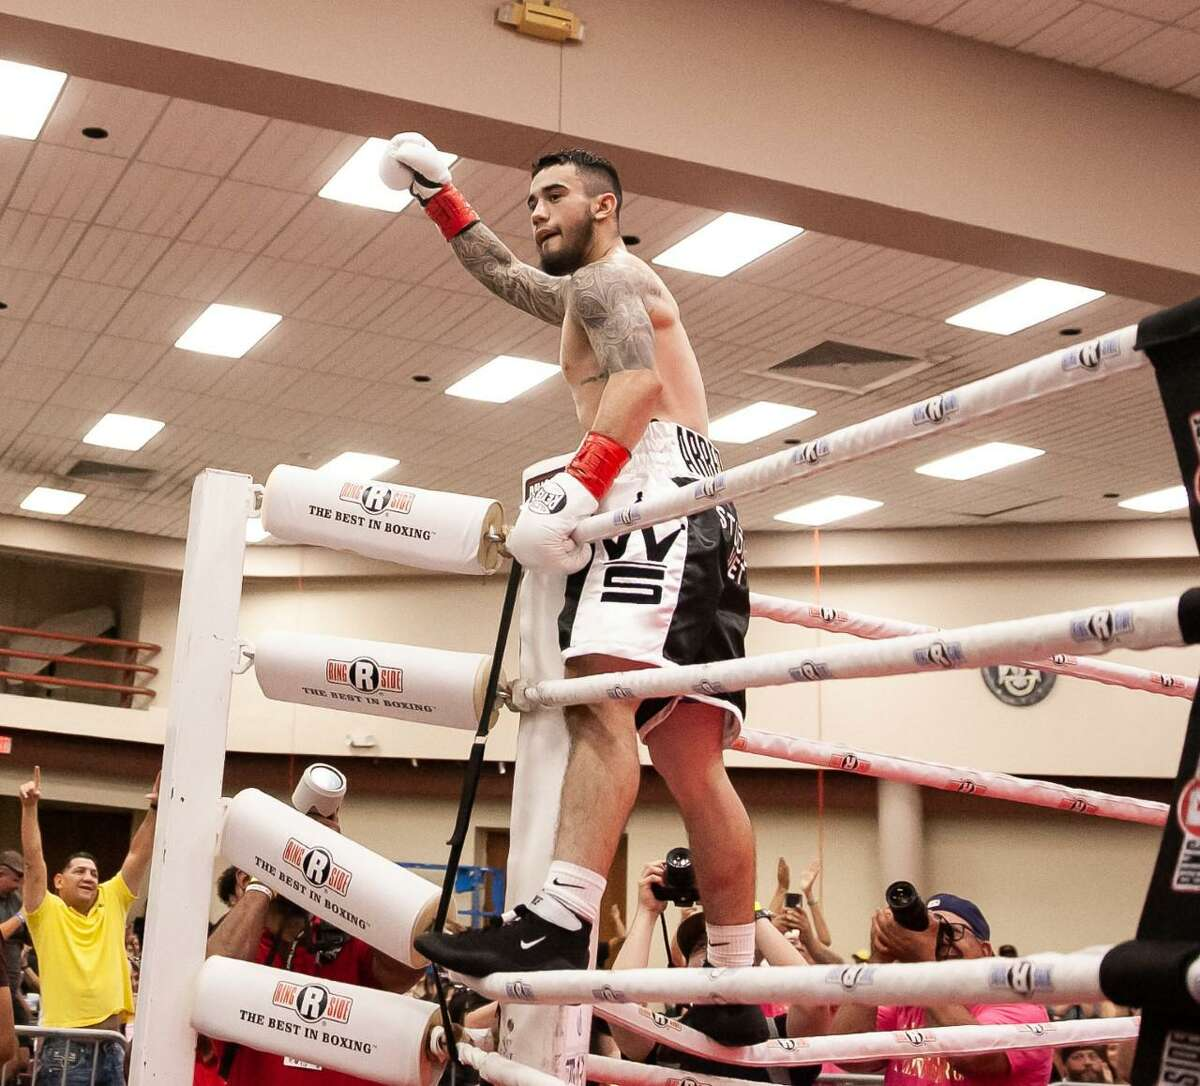 San Antonio boxer Henry Arredondo celebrates on the ropes after his second- round knockout victory over Alejandro Moreno in this Aug. 4, 2019, file photo.